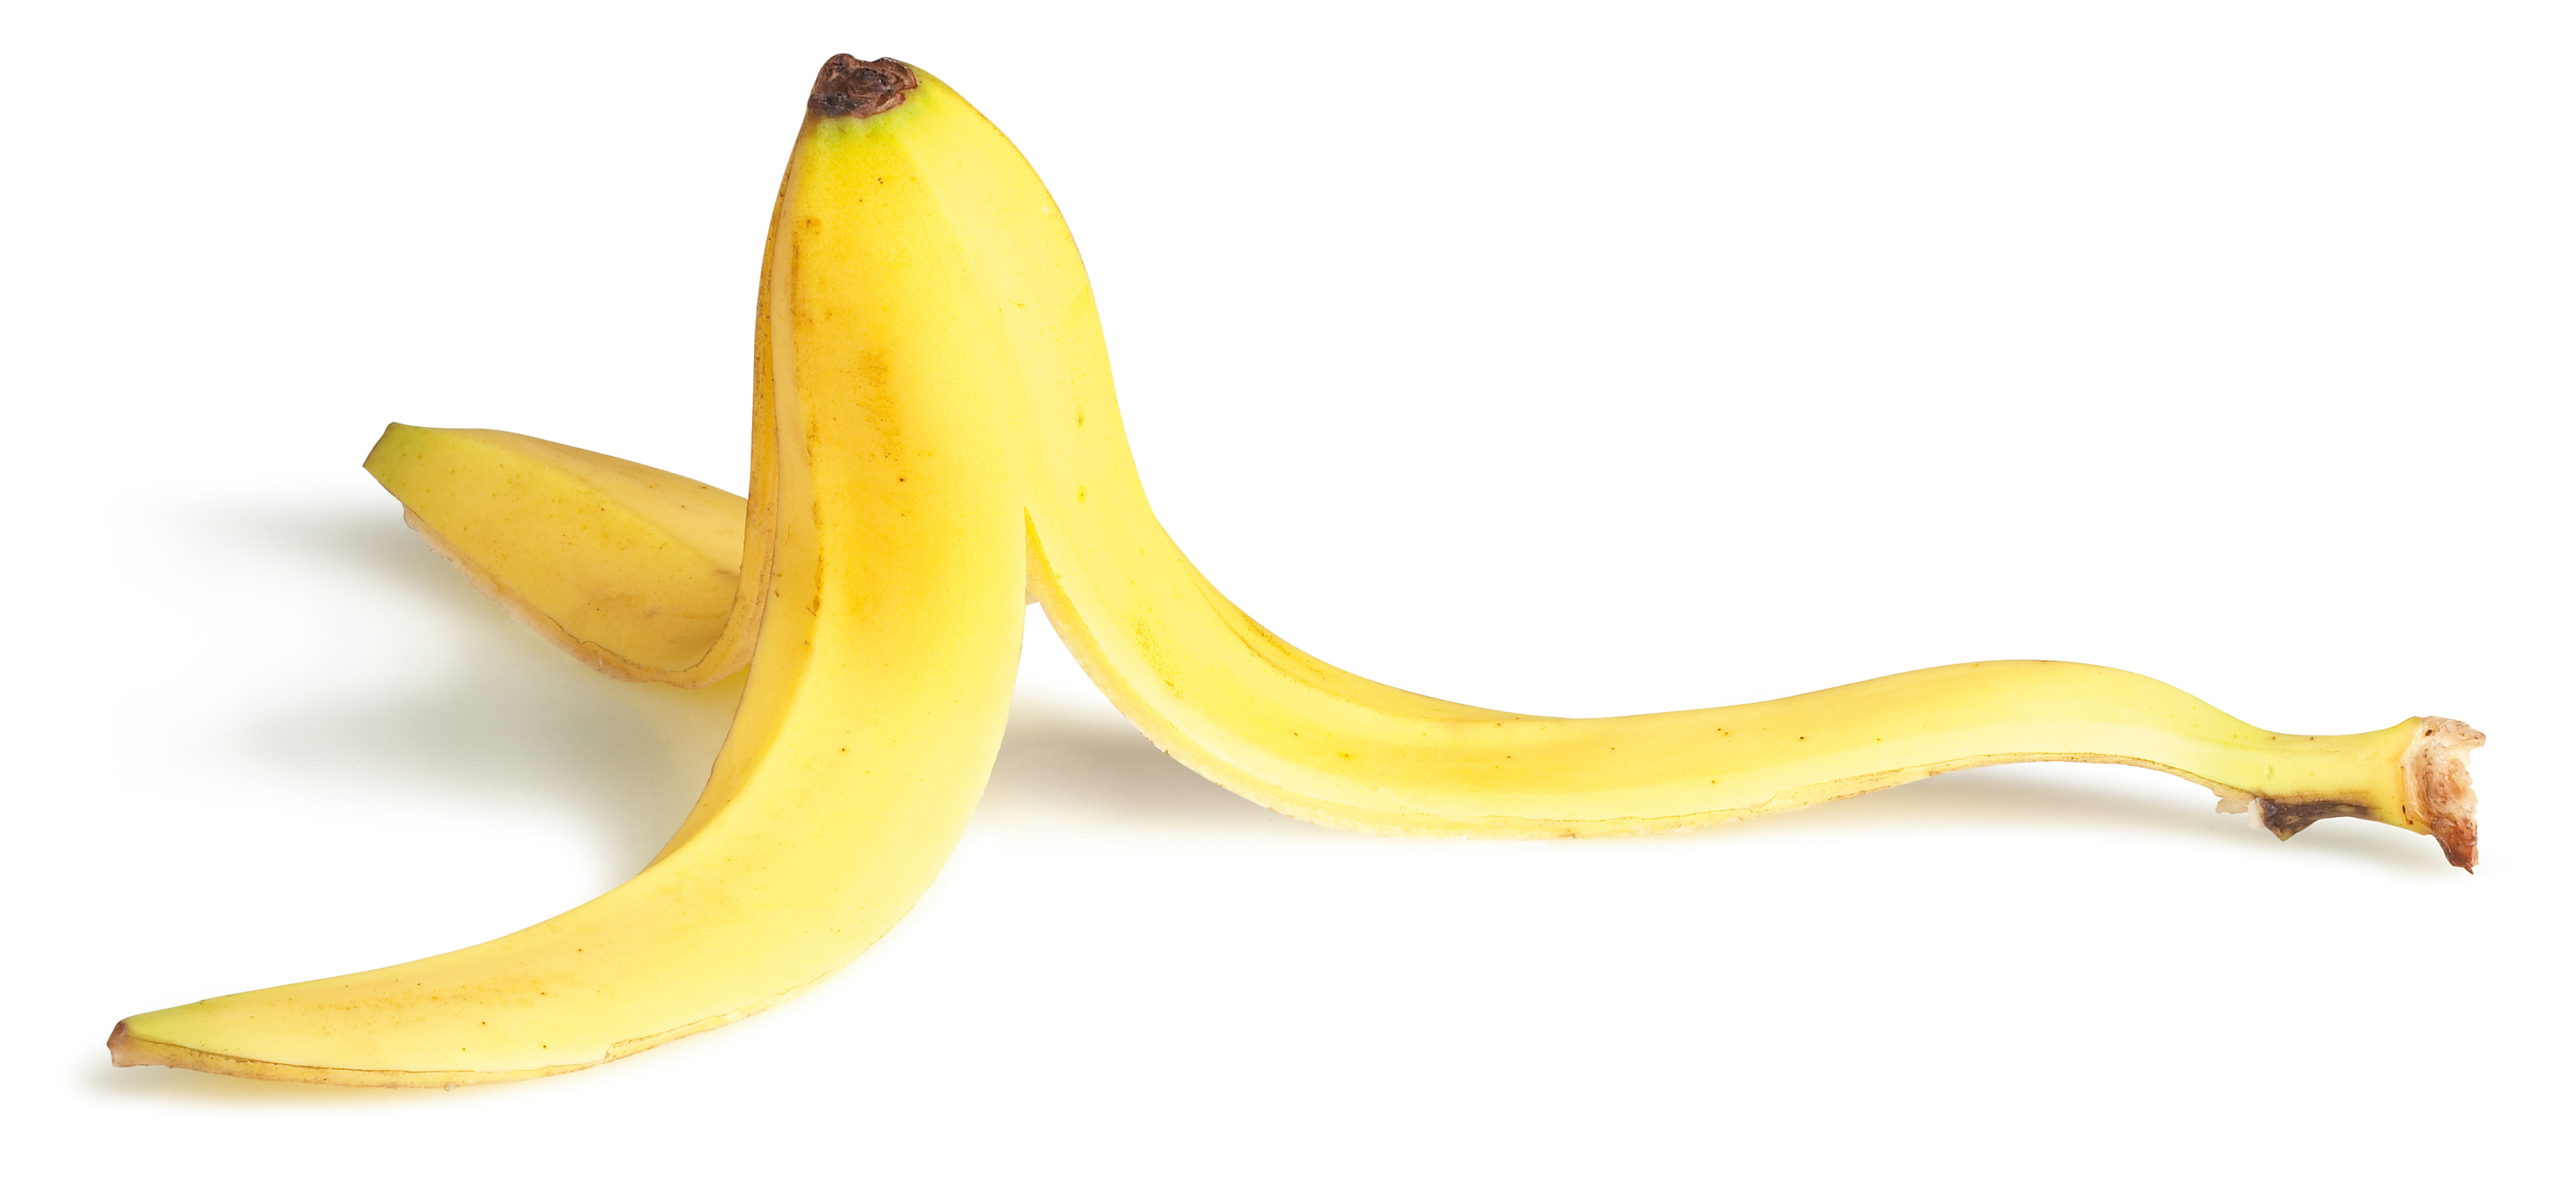 BEAUTY: 5 AMAZING THINGS YOU CAN DO WITH A BANANA PEEL - NaijaParrot.com